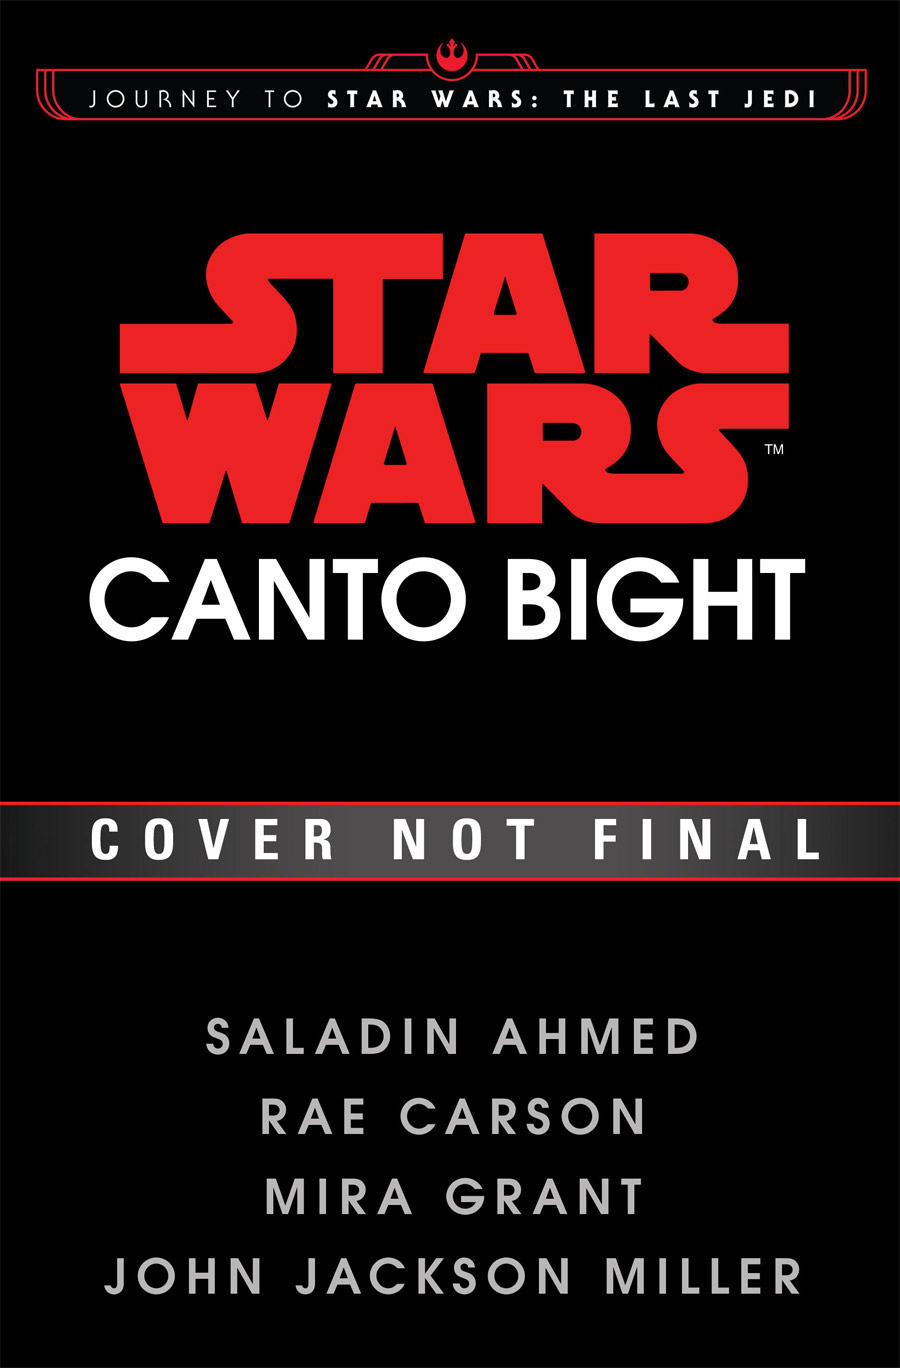 Journey to Star Wars The Last Jedi - Canto Bight